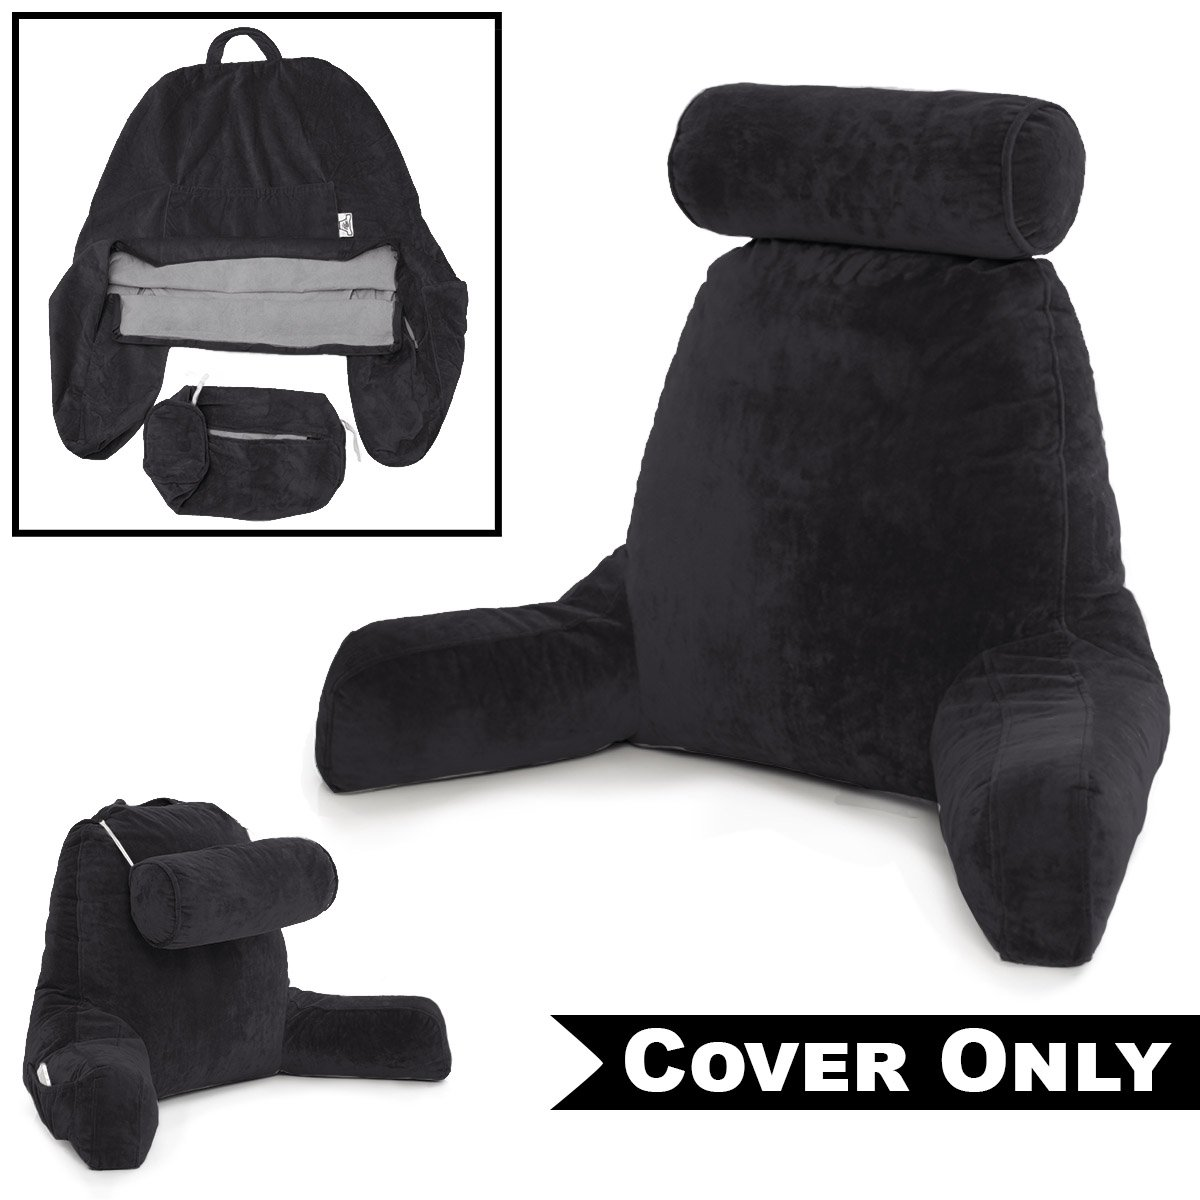 Husband Pillow Black Cover ONLY Cover Set - Microplush Replacement Cover for Big Reading and Backrest Support Bed Rest - Removable and Washable Cover Set Includes Detachable Neck Roll Cover